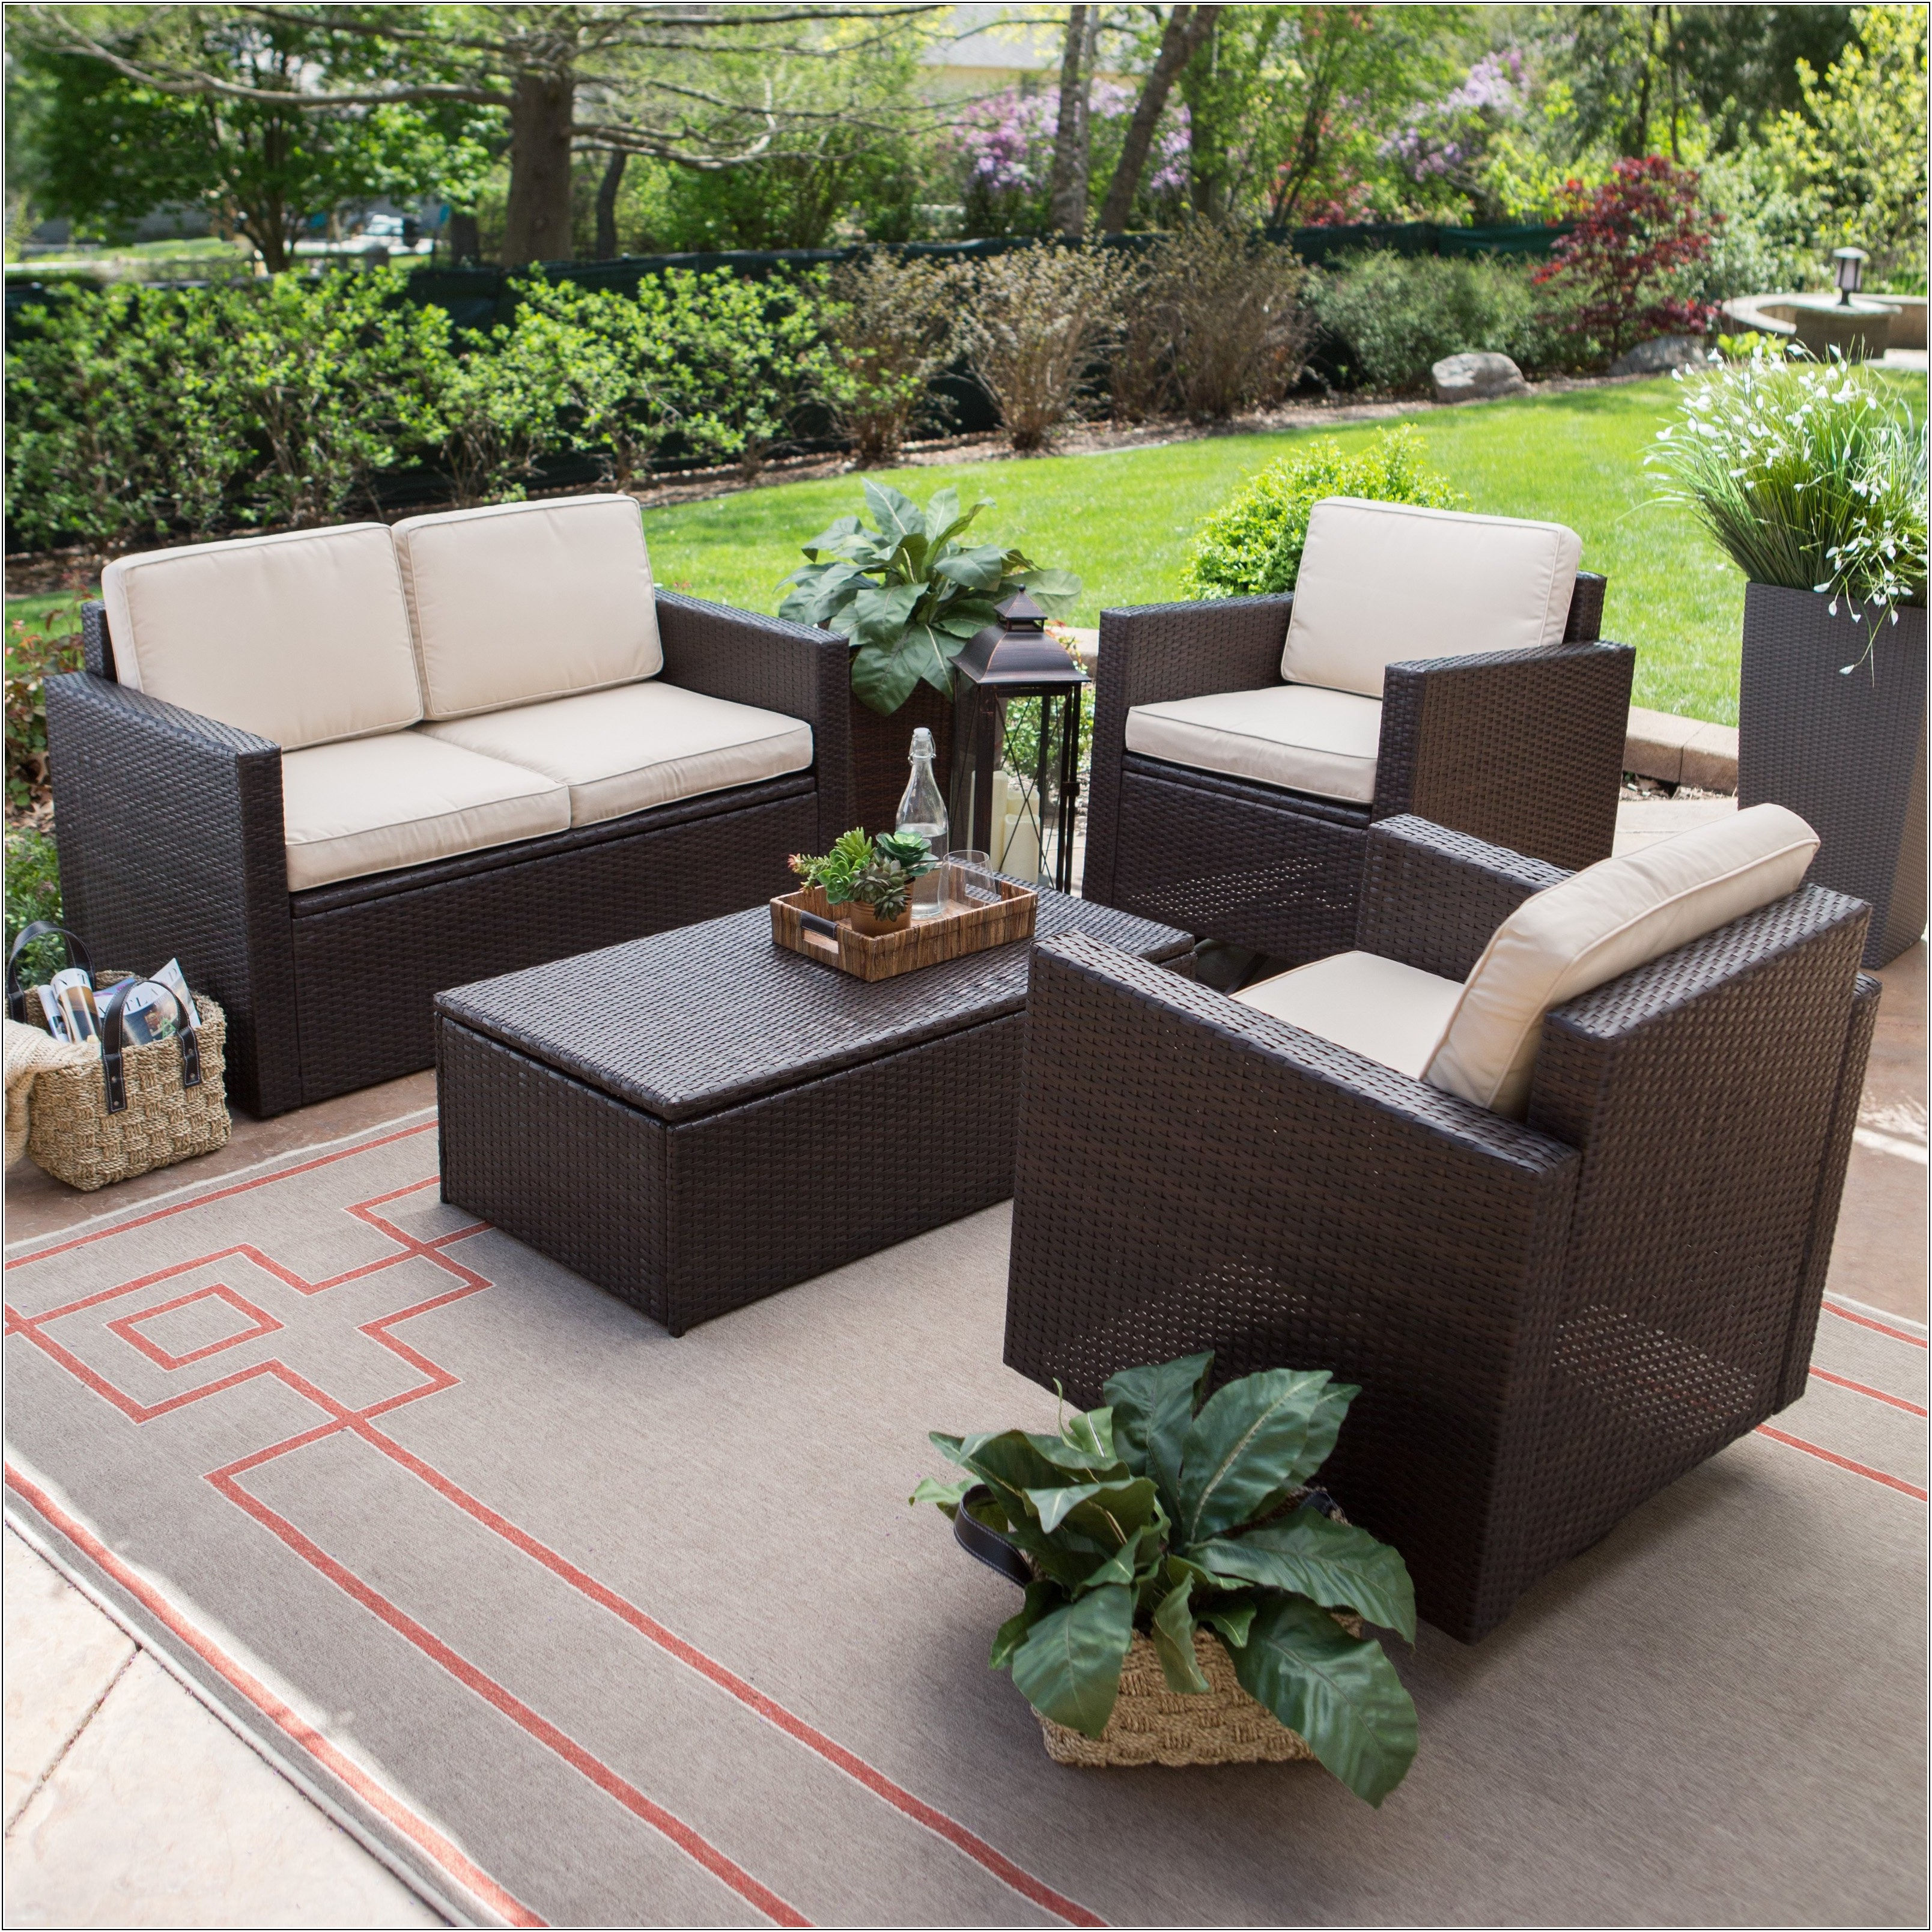 Small Space Patio Furniture Ideas